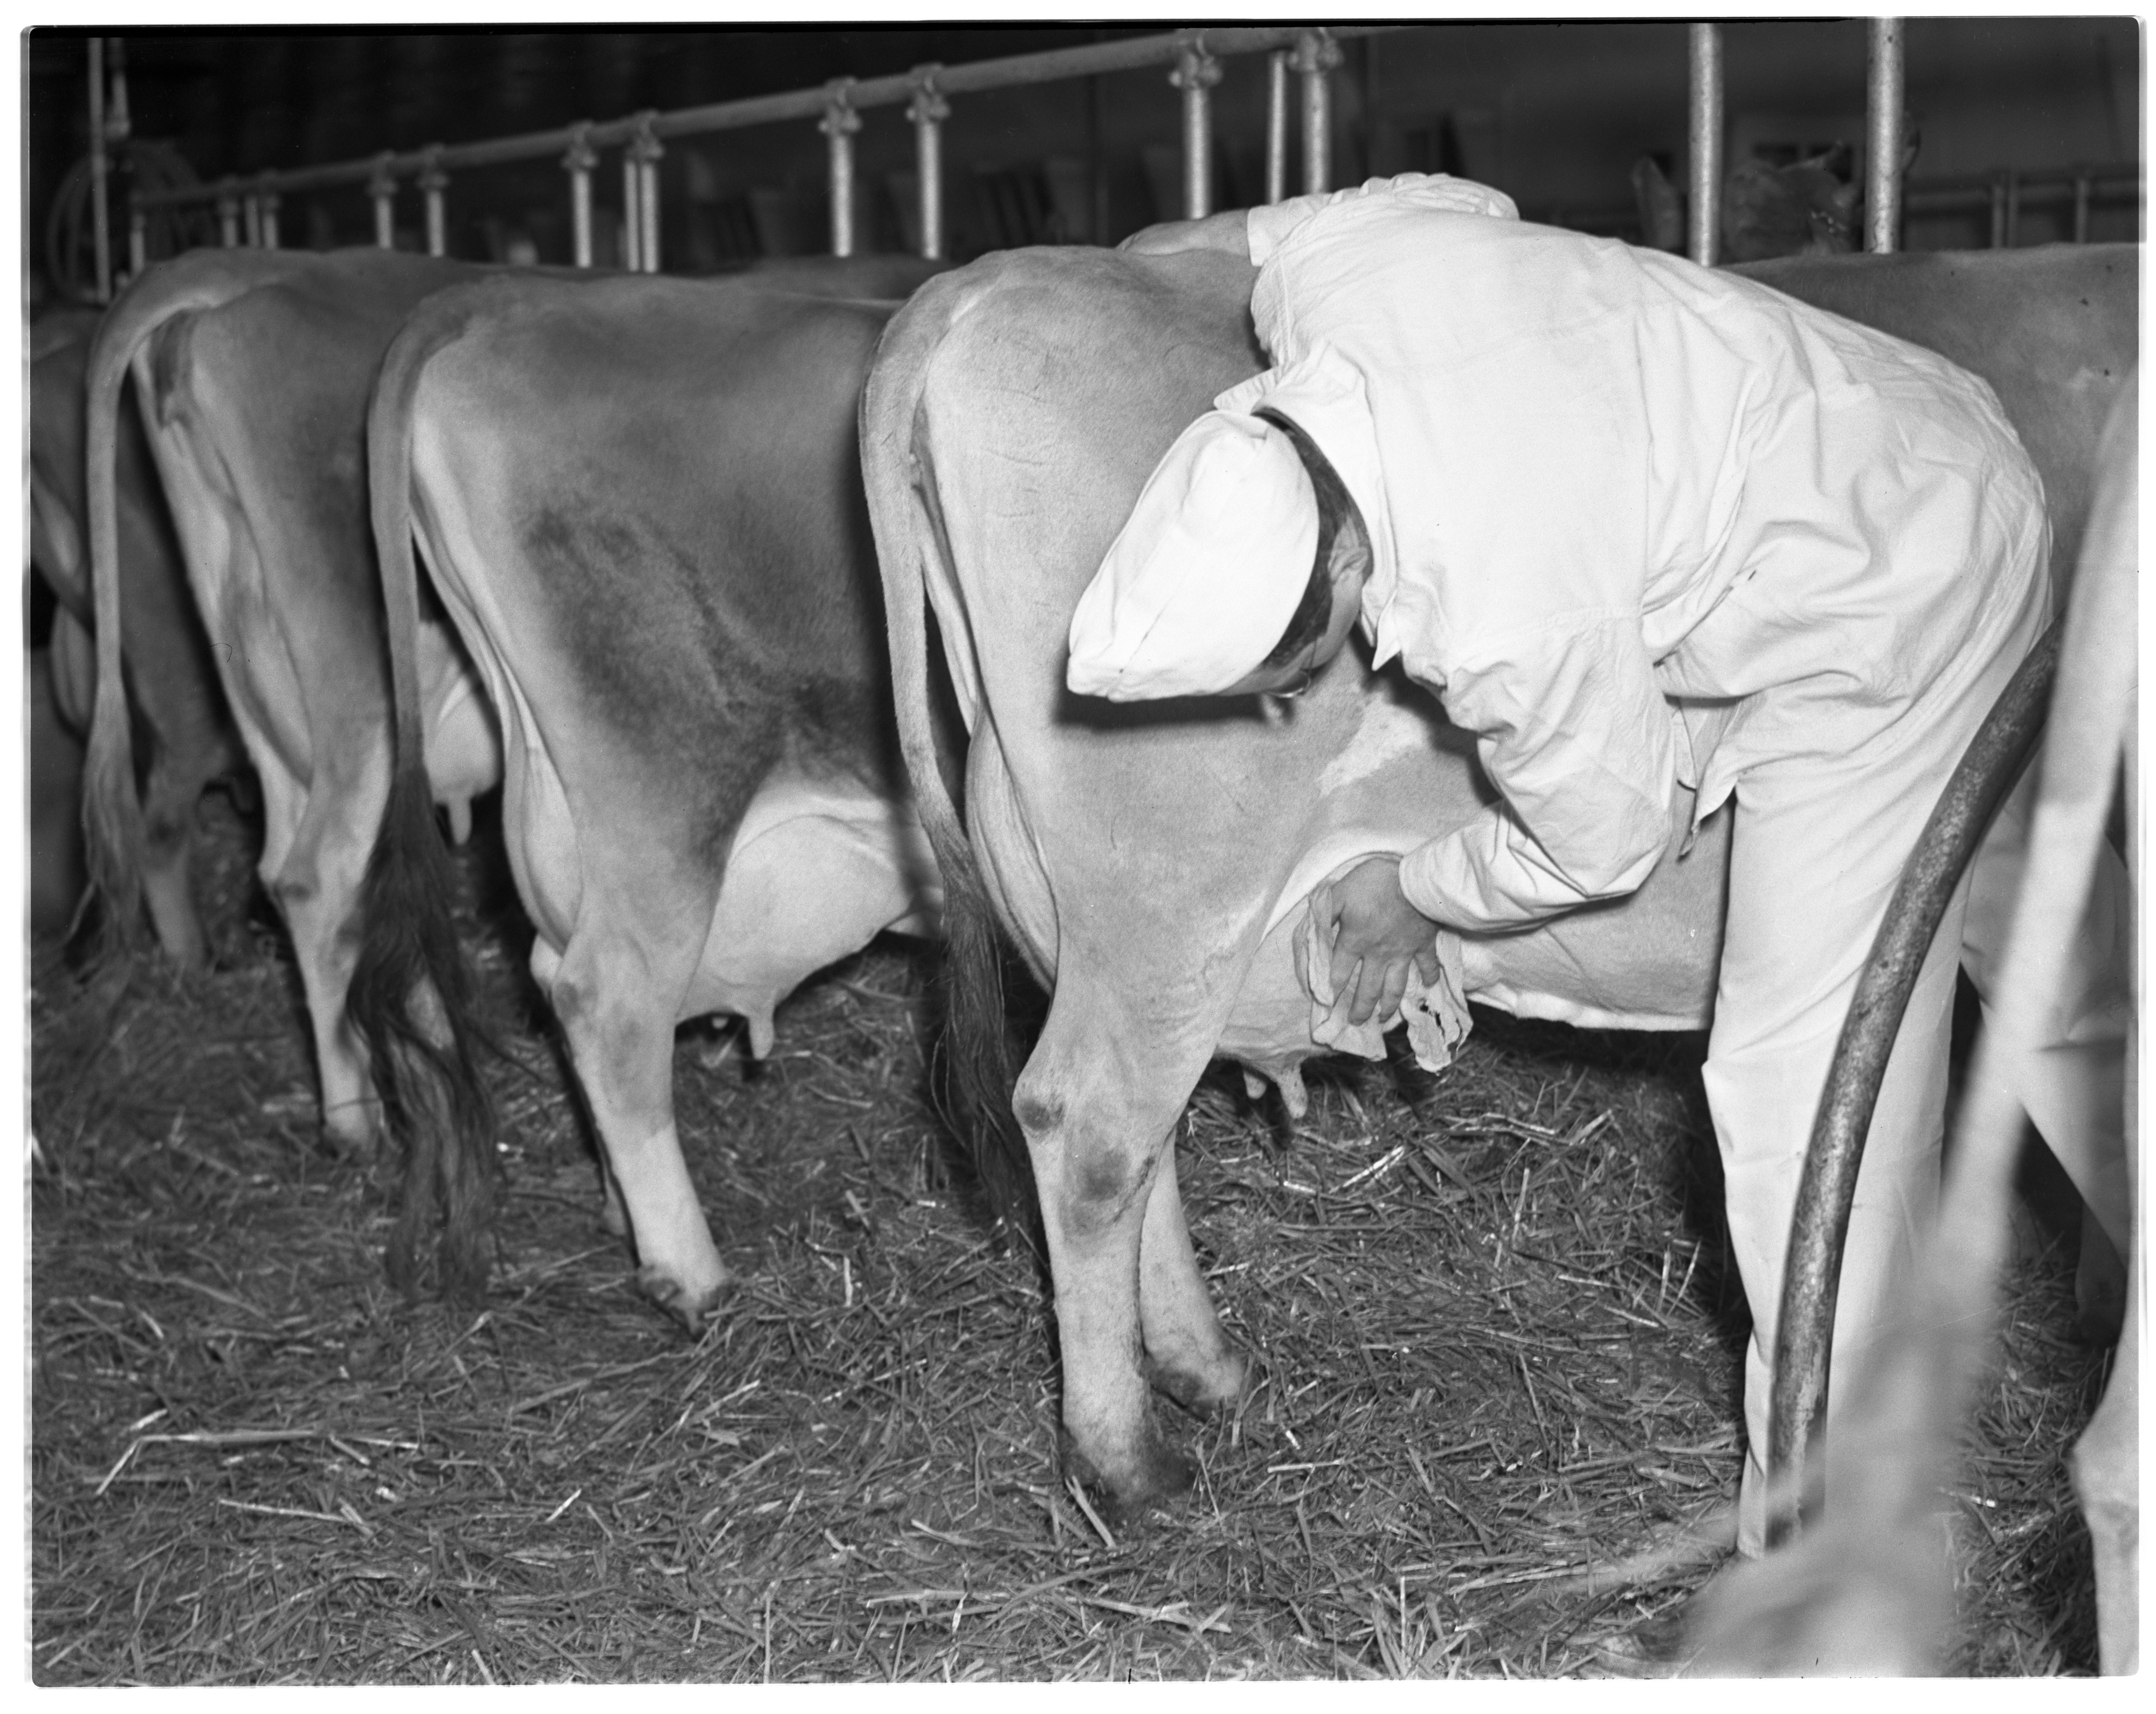 Man Milking a Cow image